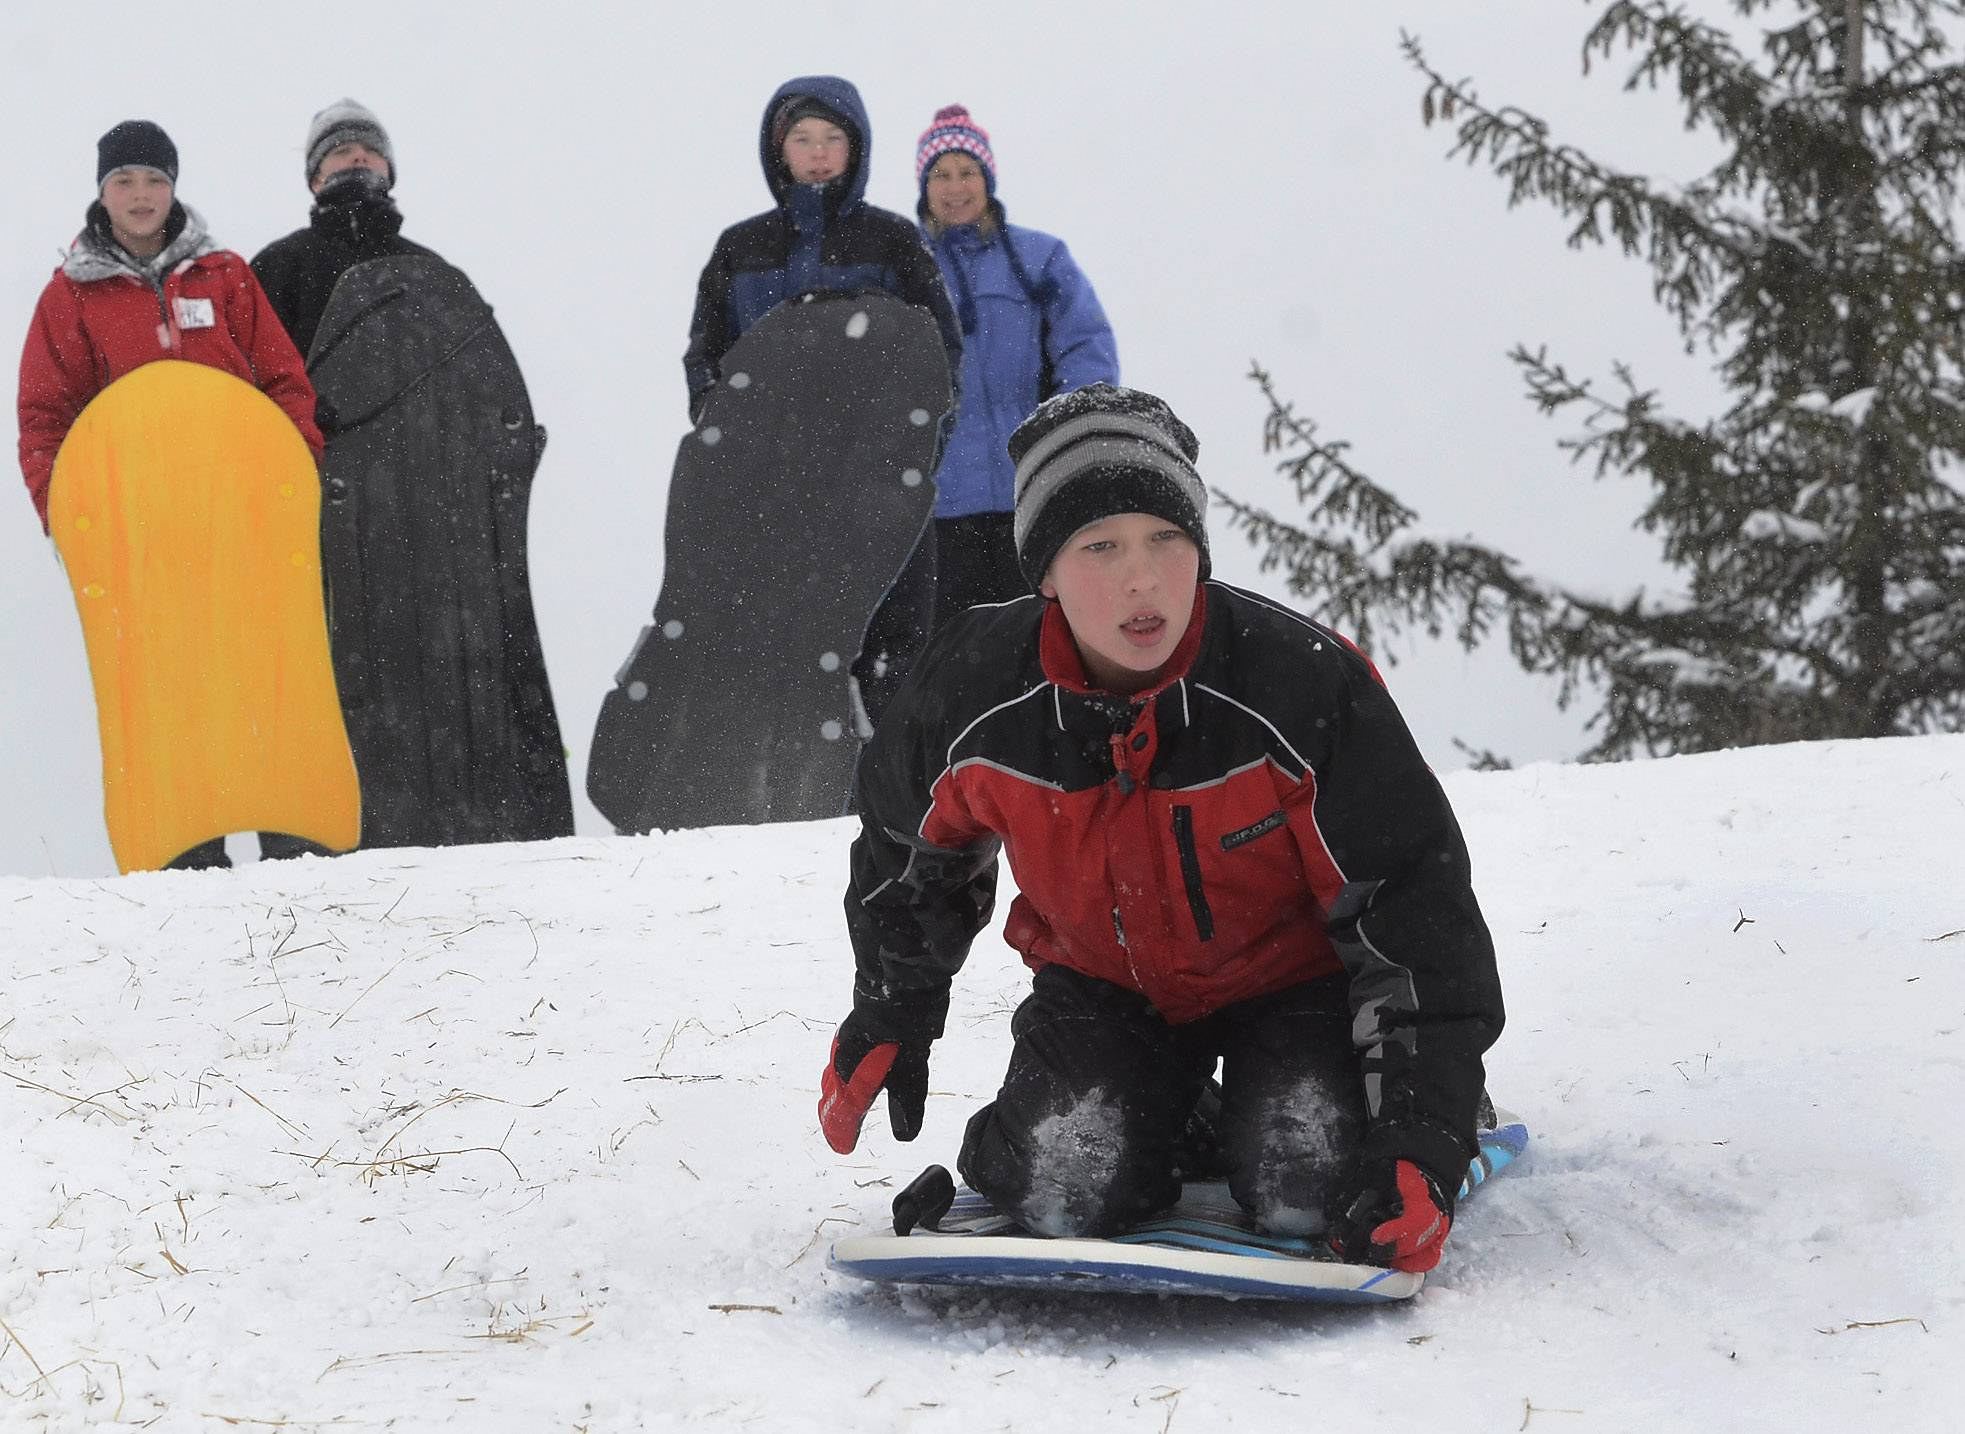 With his buddies urging him on, Timmy O'Reilly of Palatine heads down the hill on his sled at Reimer Reservoir in Palatine.